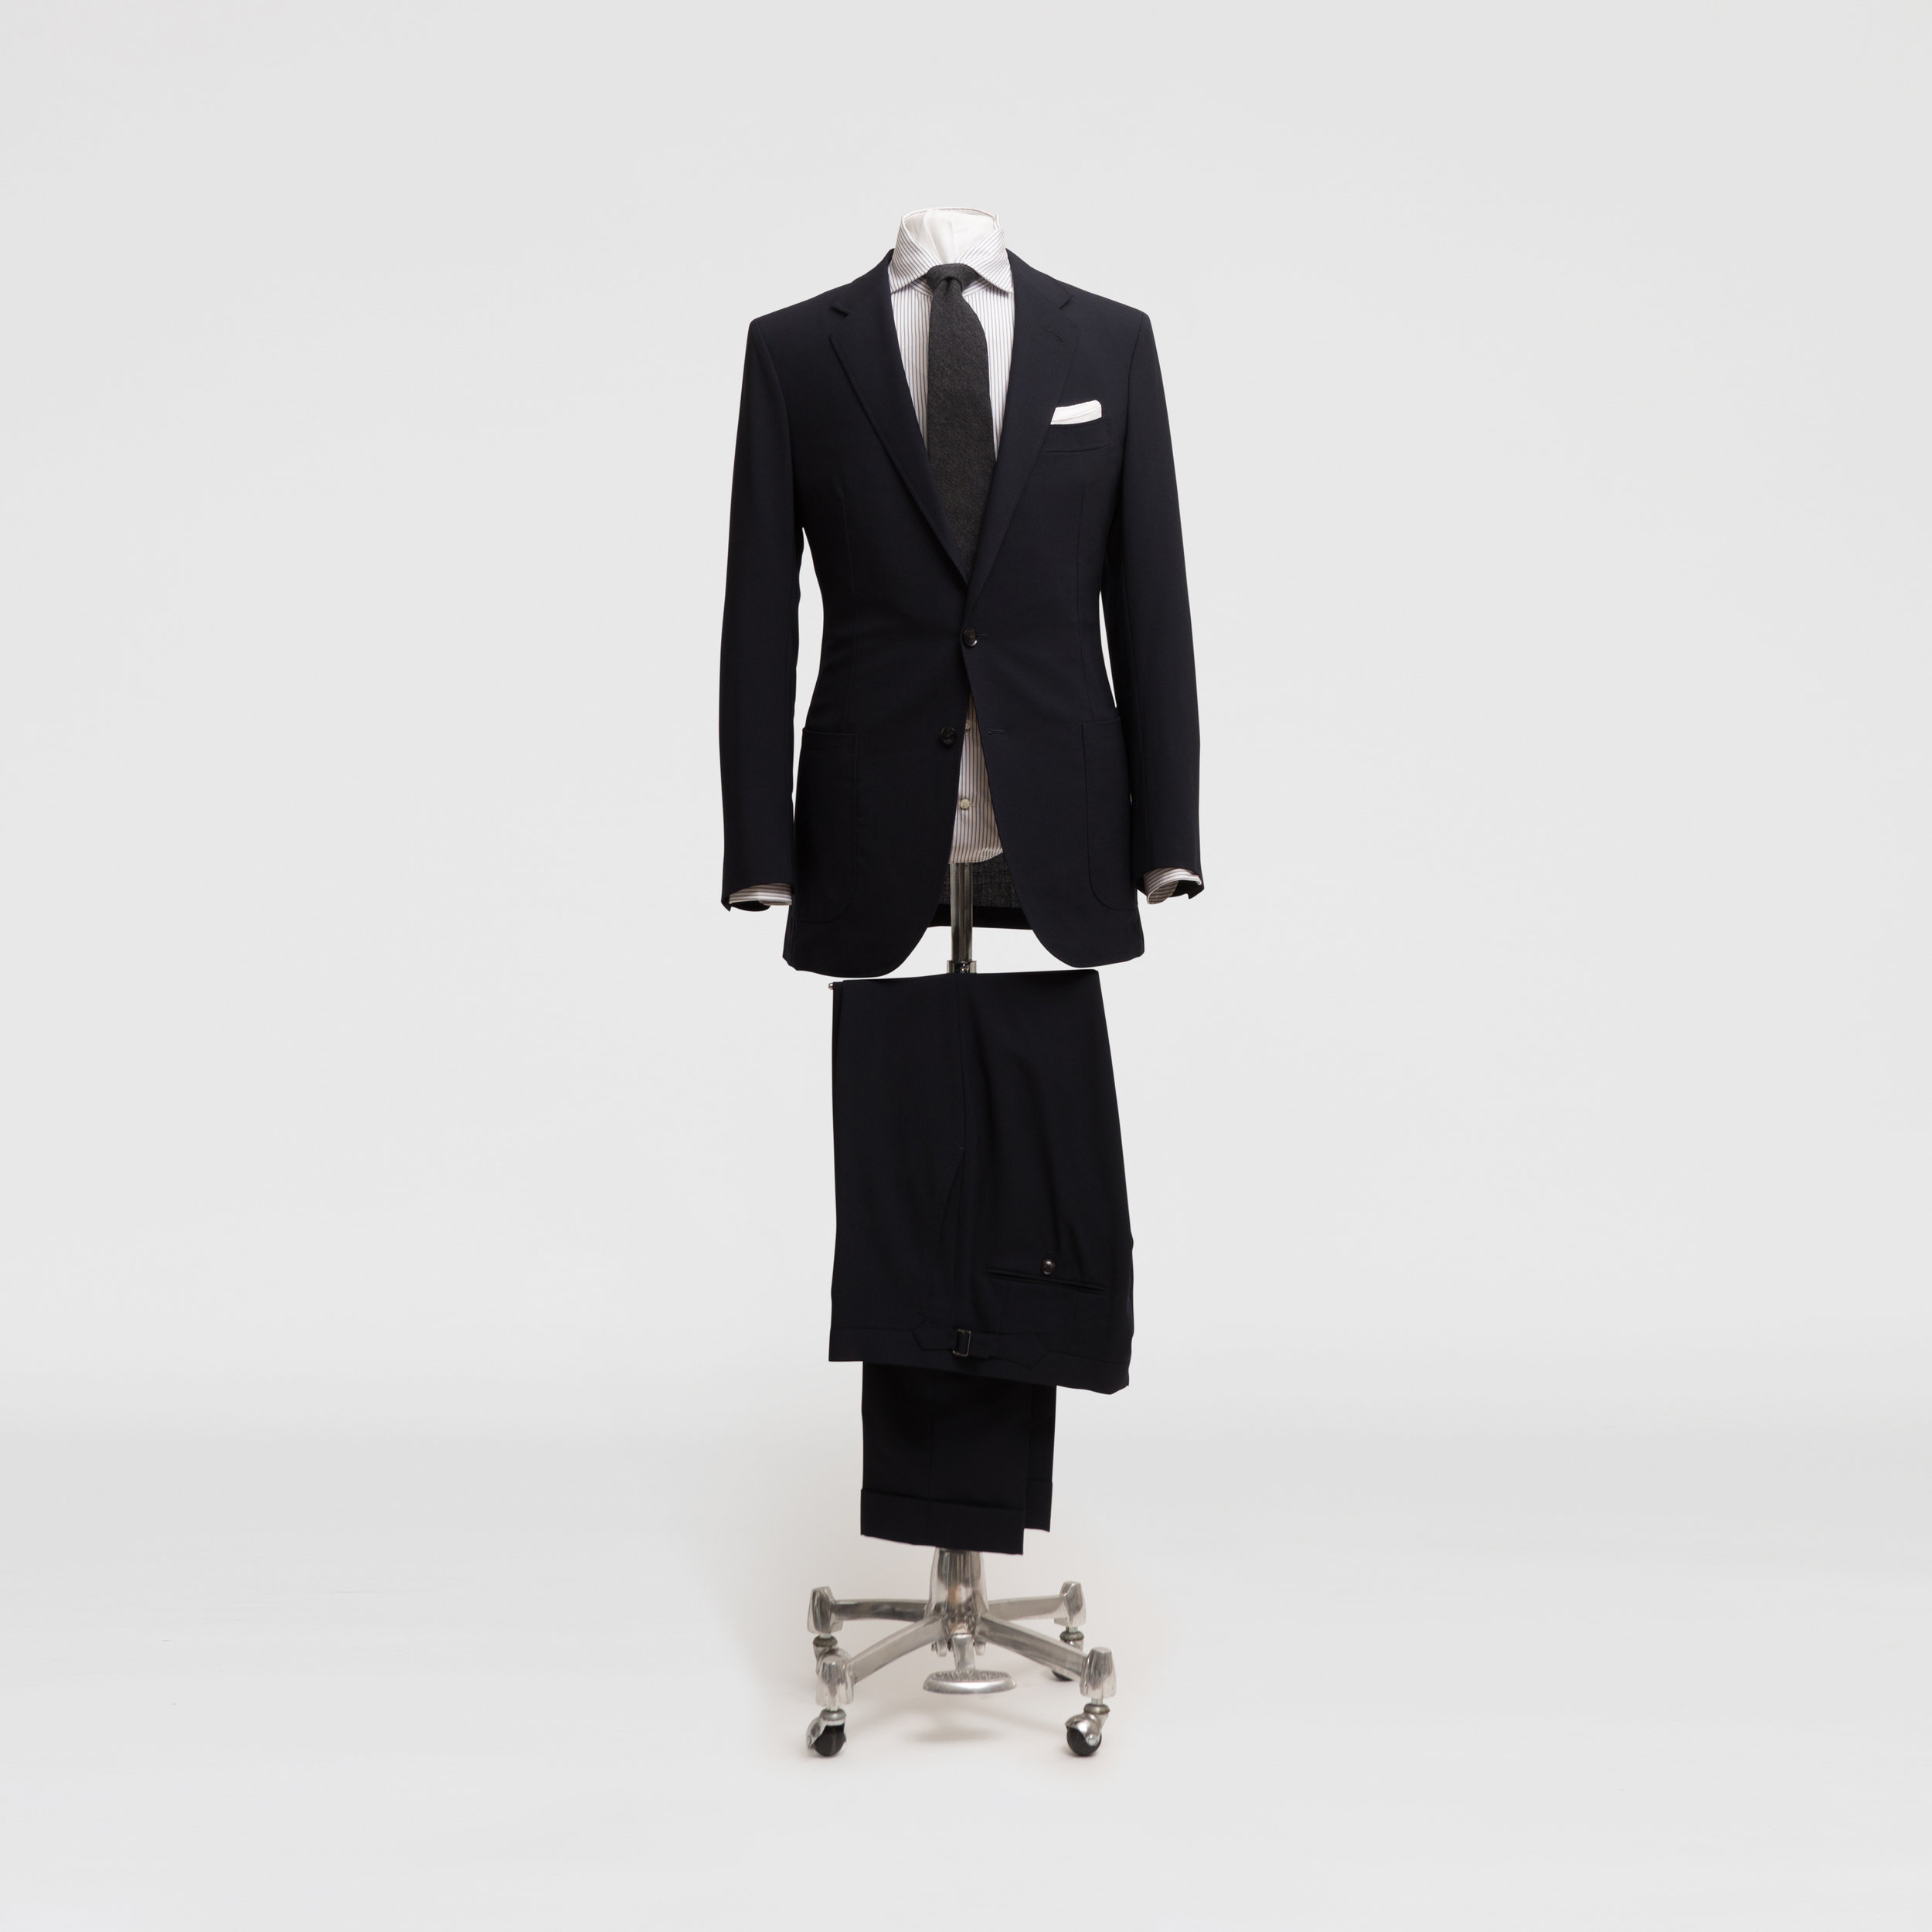 Perfect for a formal office, pair with the suit trousers, a crisp Egyptian cotton shirt and a dark, centering tie. Classic leather shoes and a white linen pocket square will round off the look.